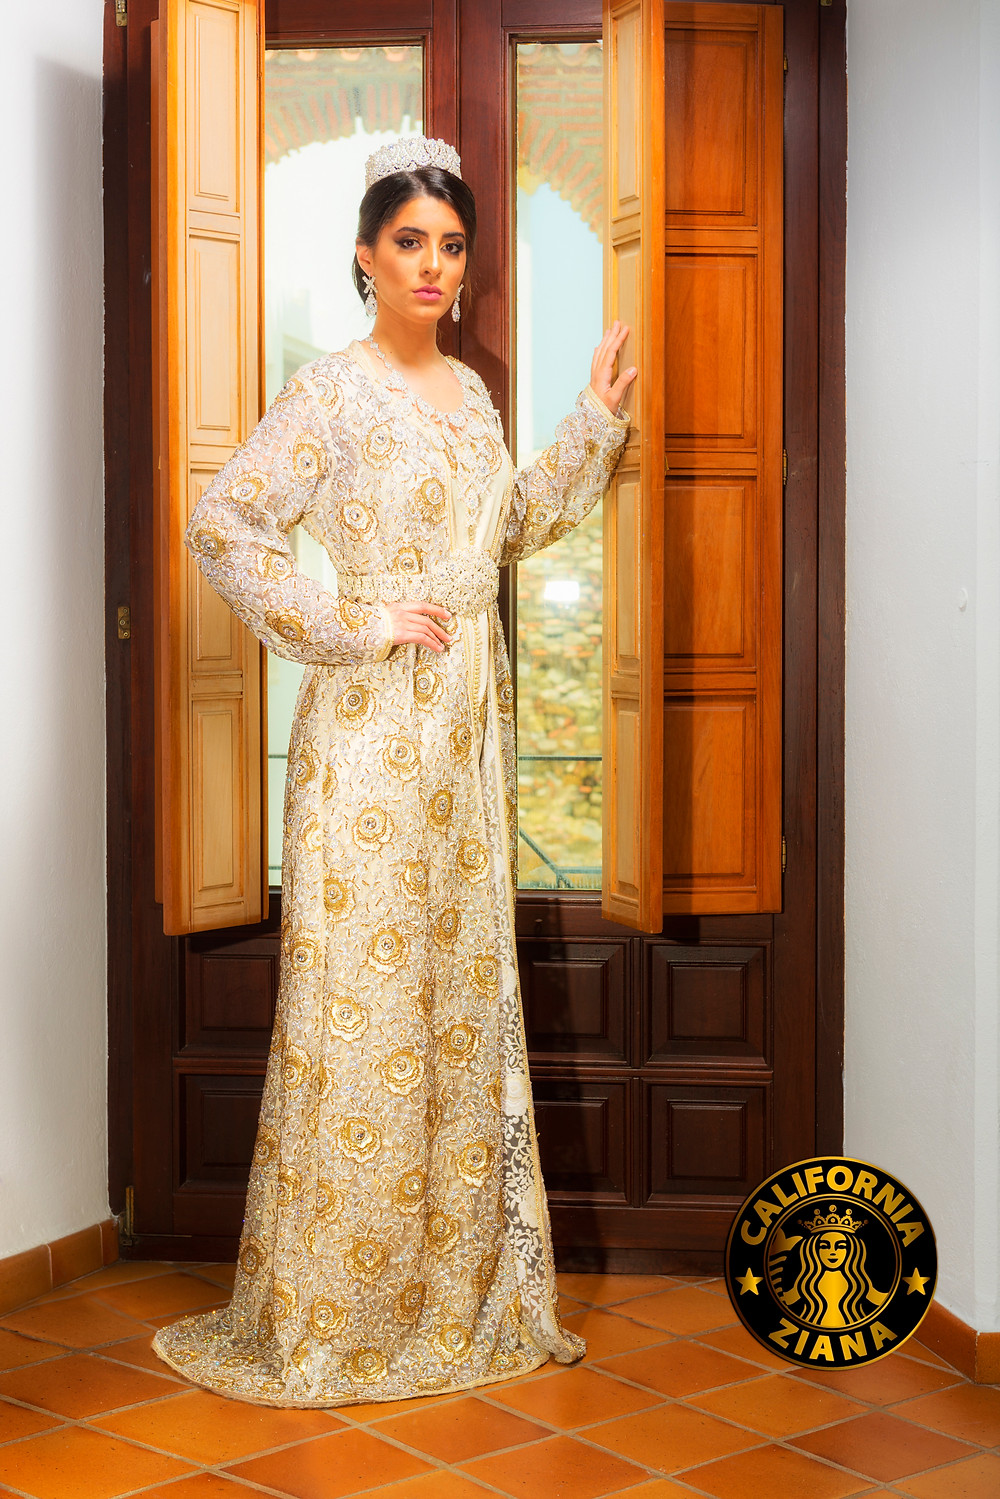 Ziana California kaftan dress.